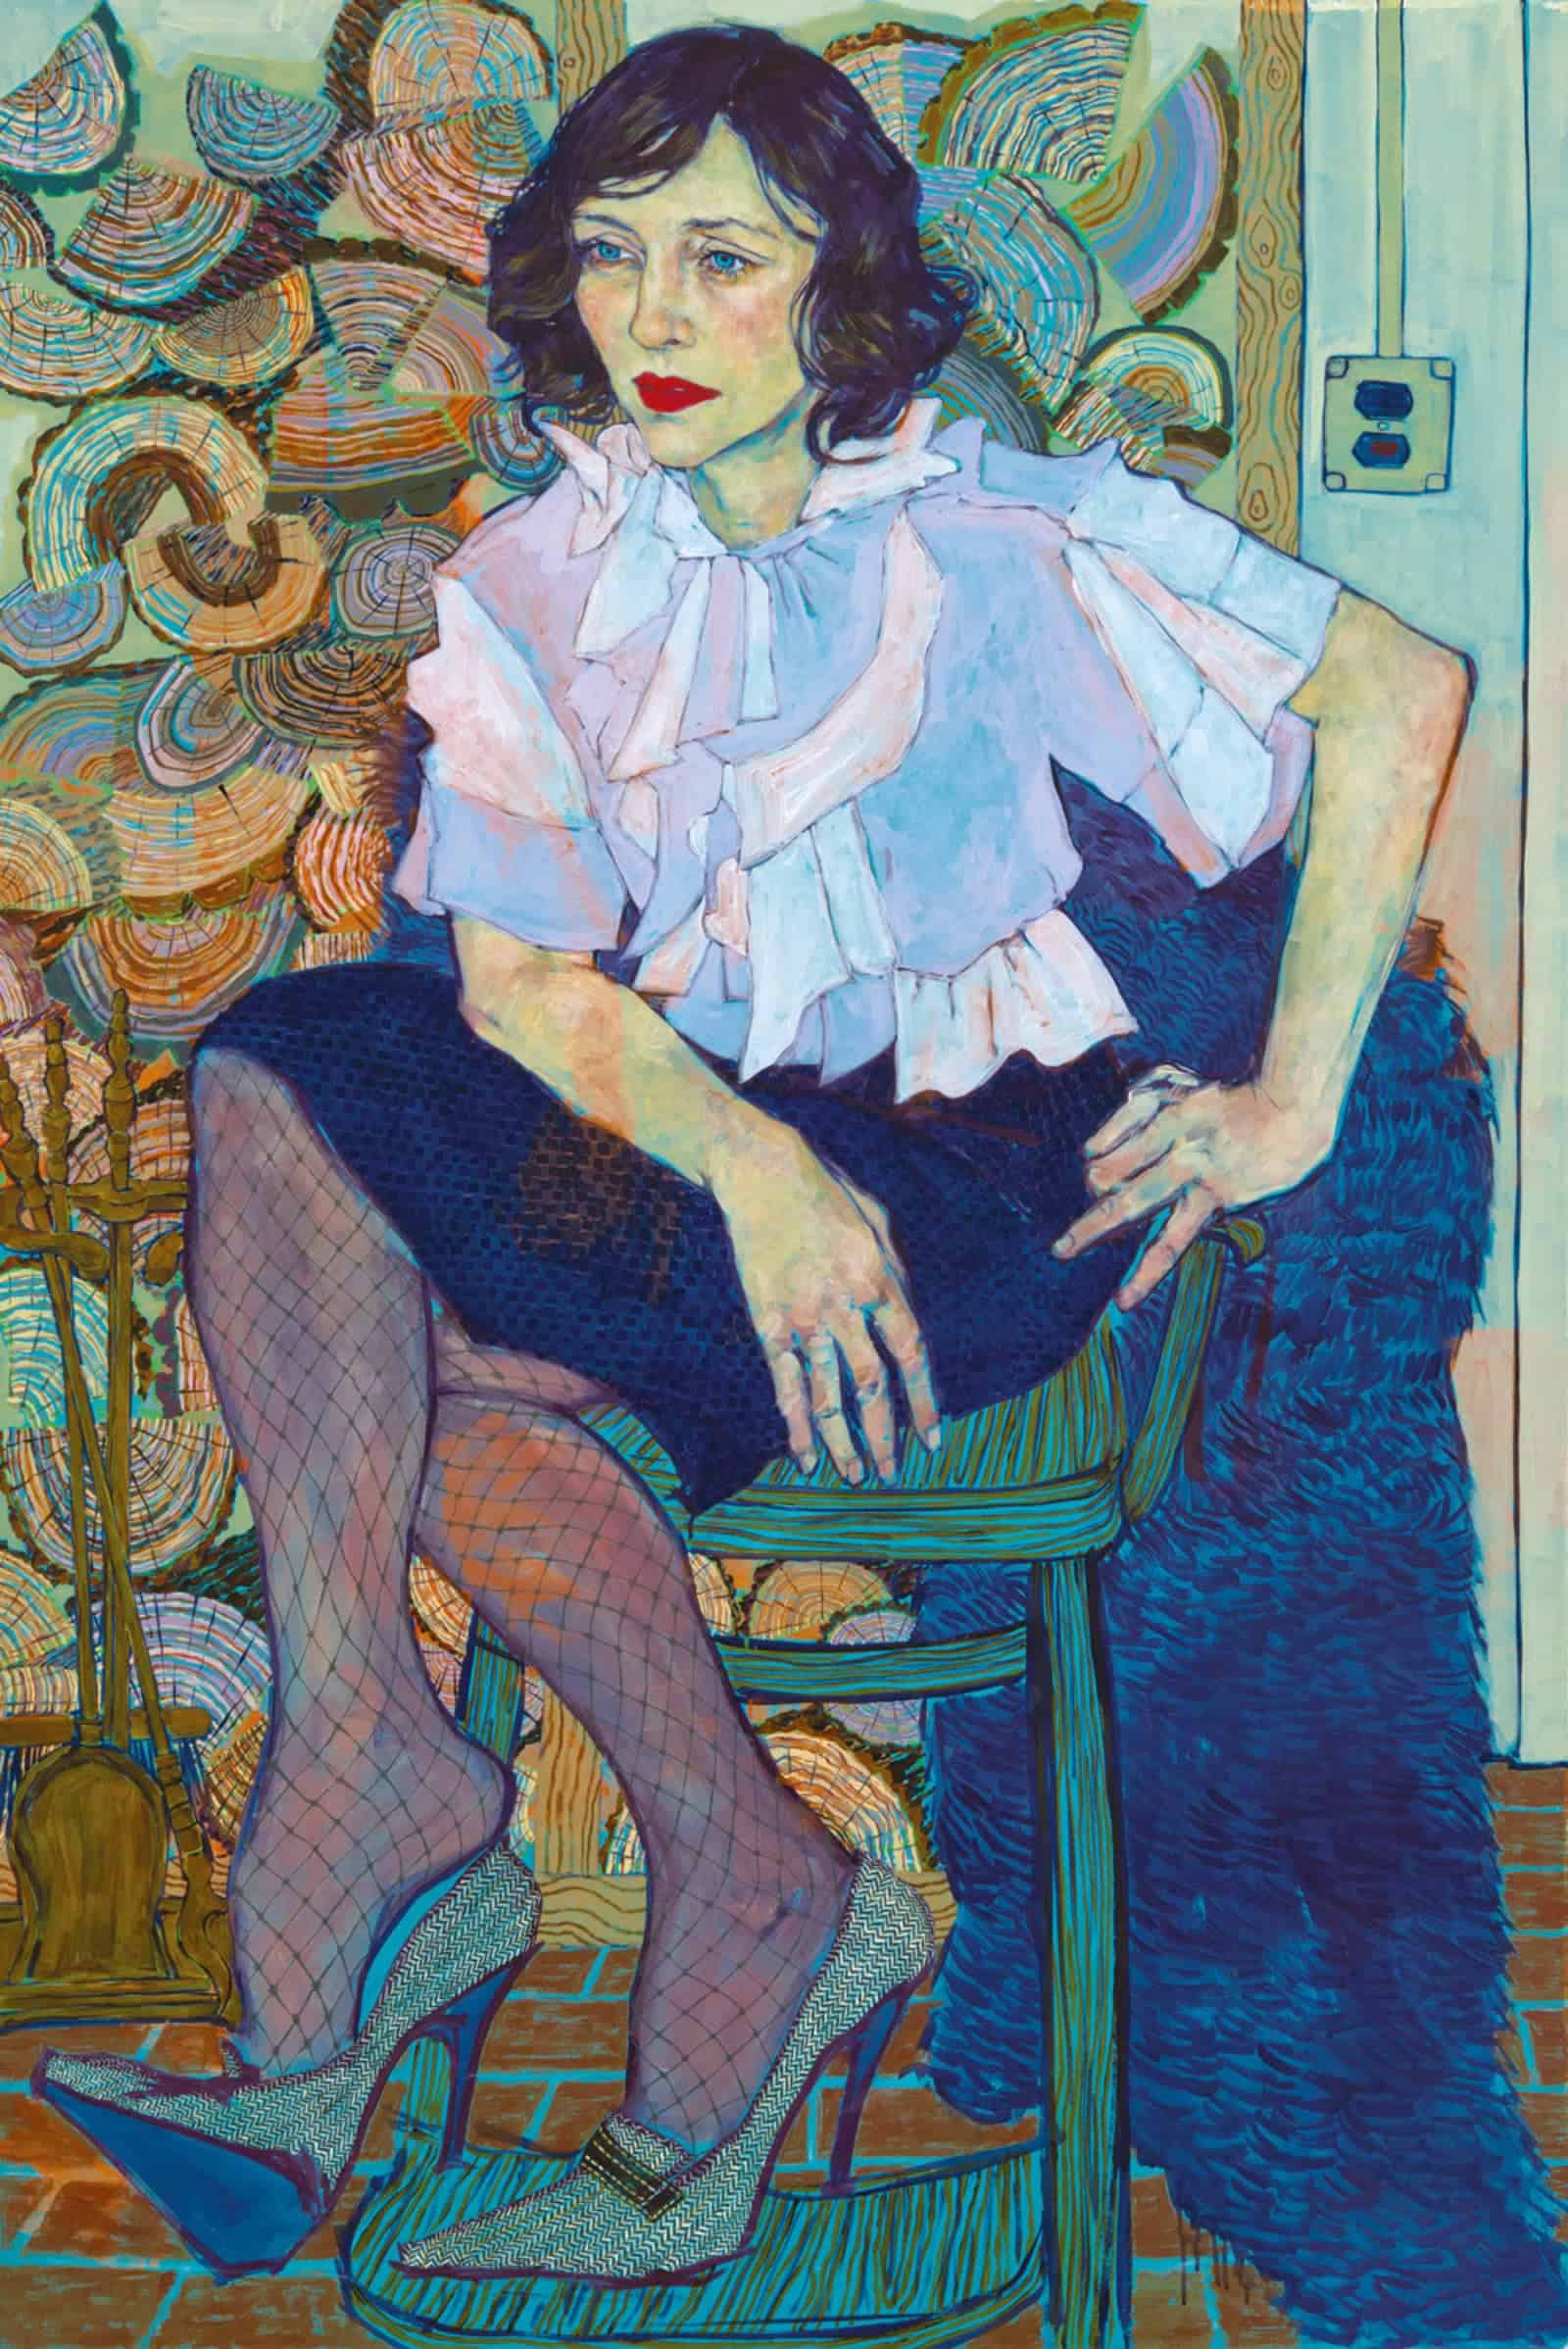 Vera, 2013, acrylic on canvas, 81 x 54 in.